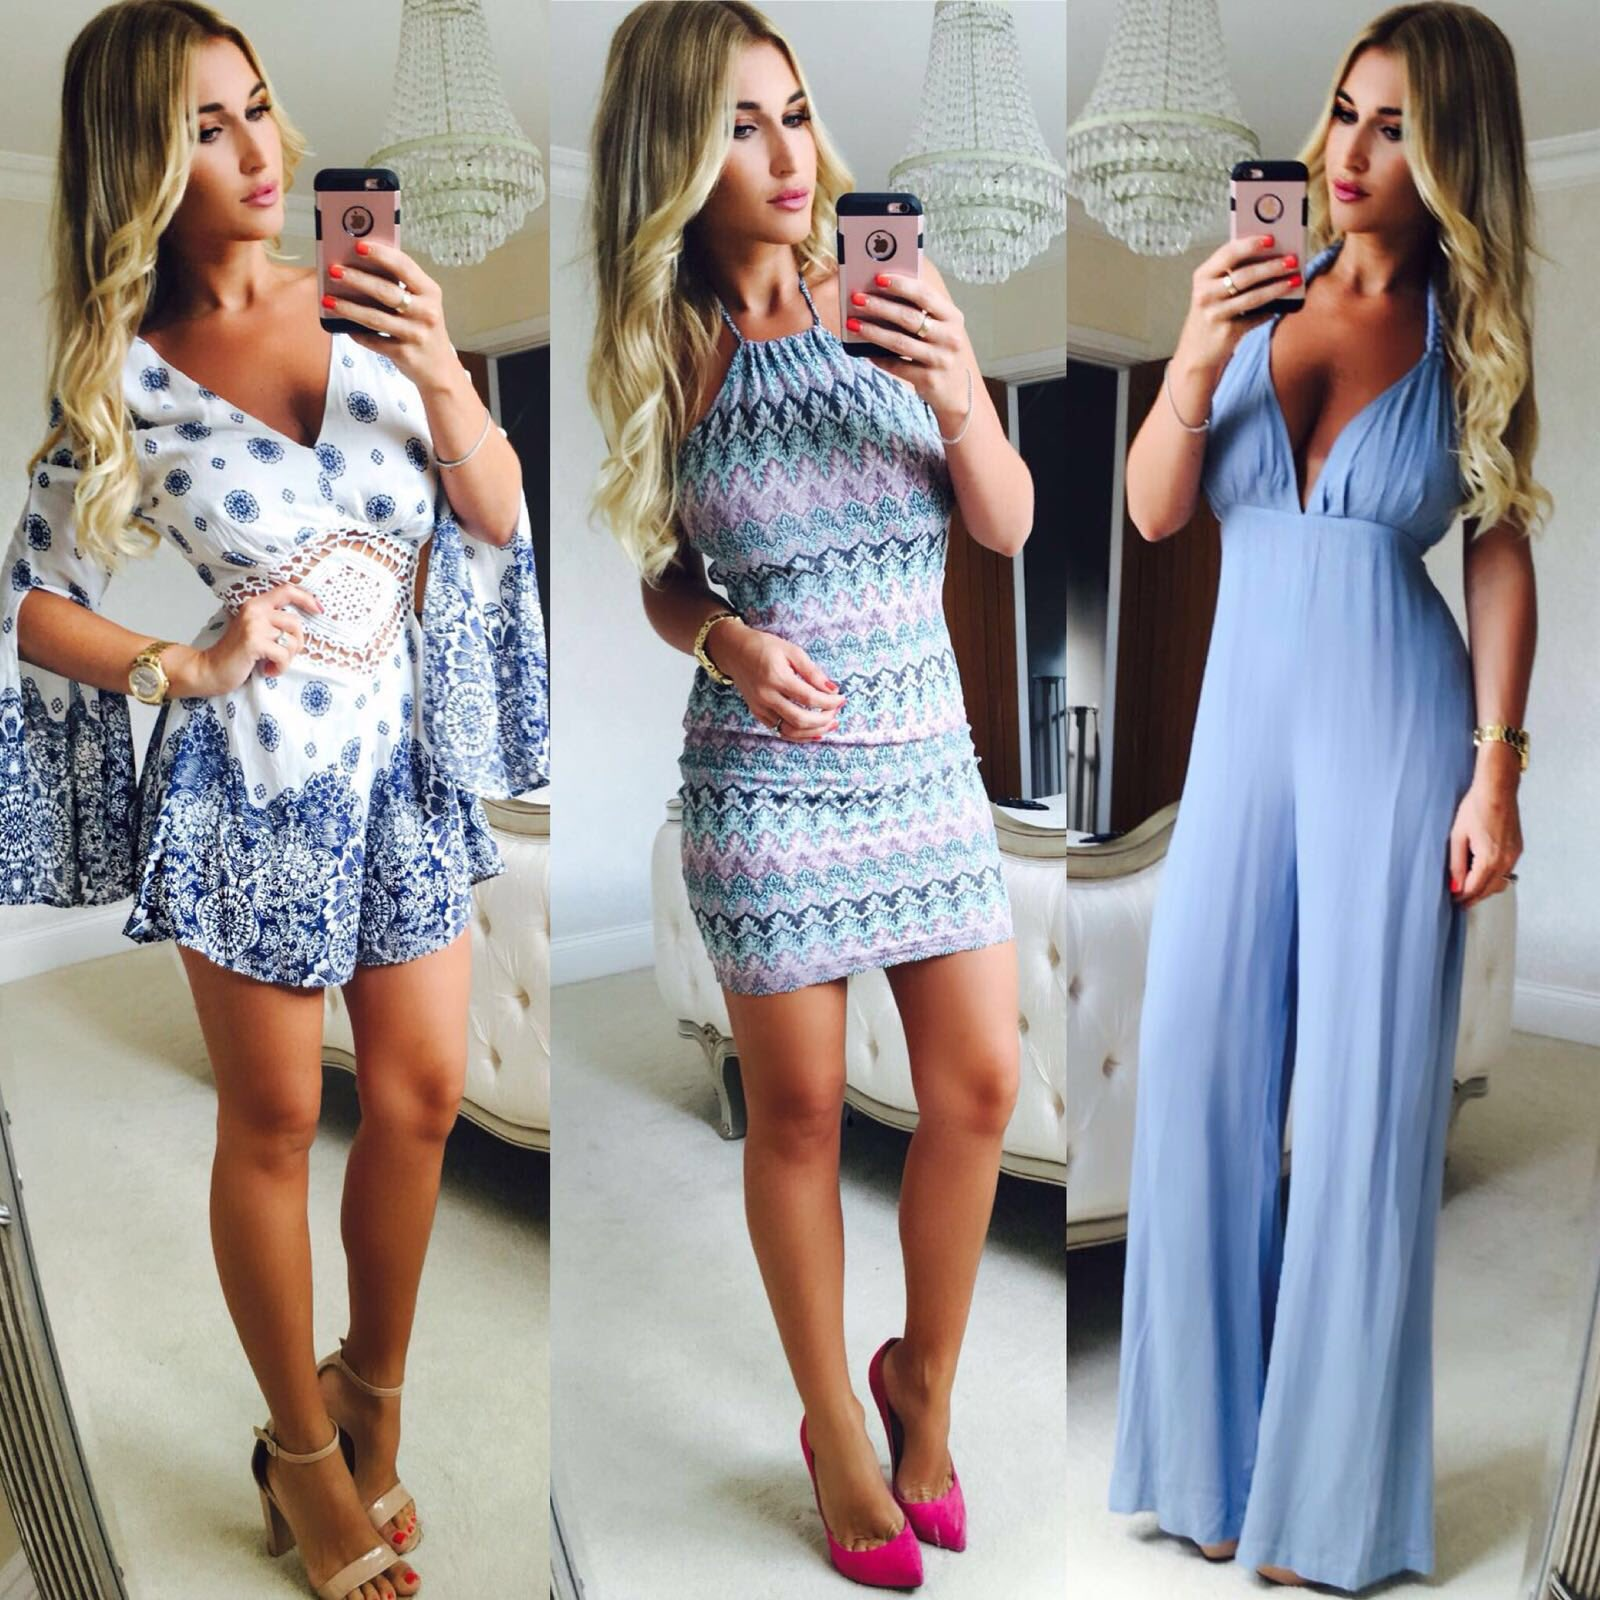 SALE is now on💗 Some of my fave summer styles with limited stock left under £10 🙀😻 👉🏻 https://t.co/xloUBhn9Qr https://t.co/mS8B56Q2Nm